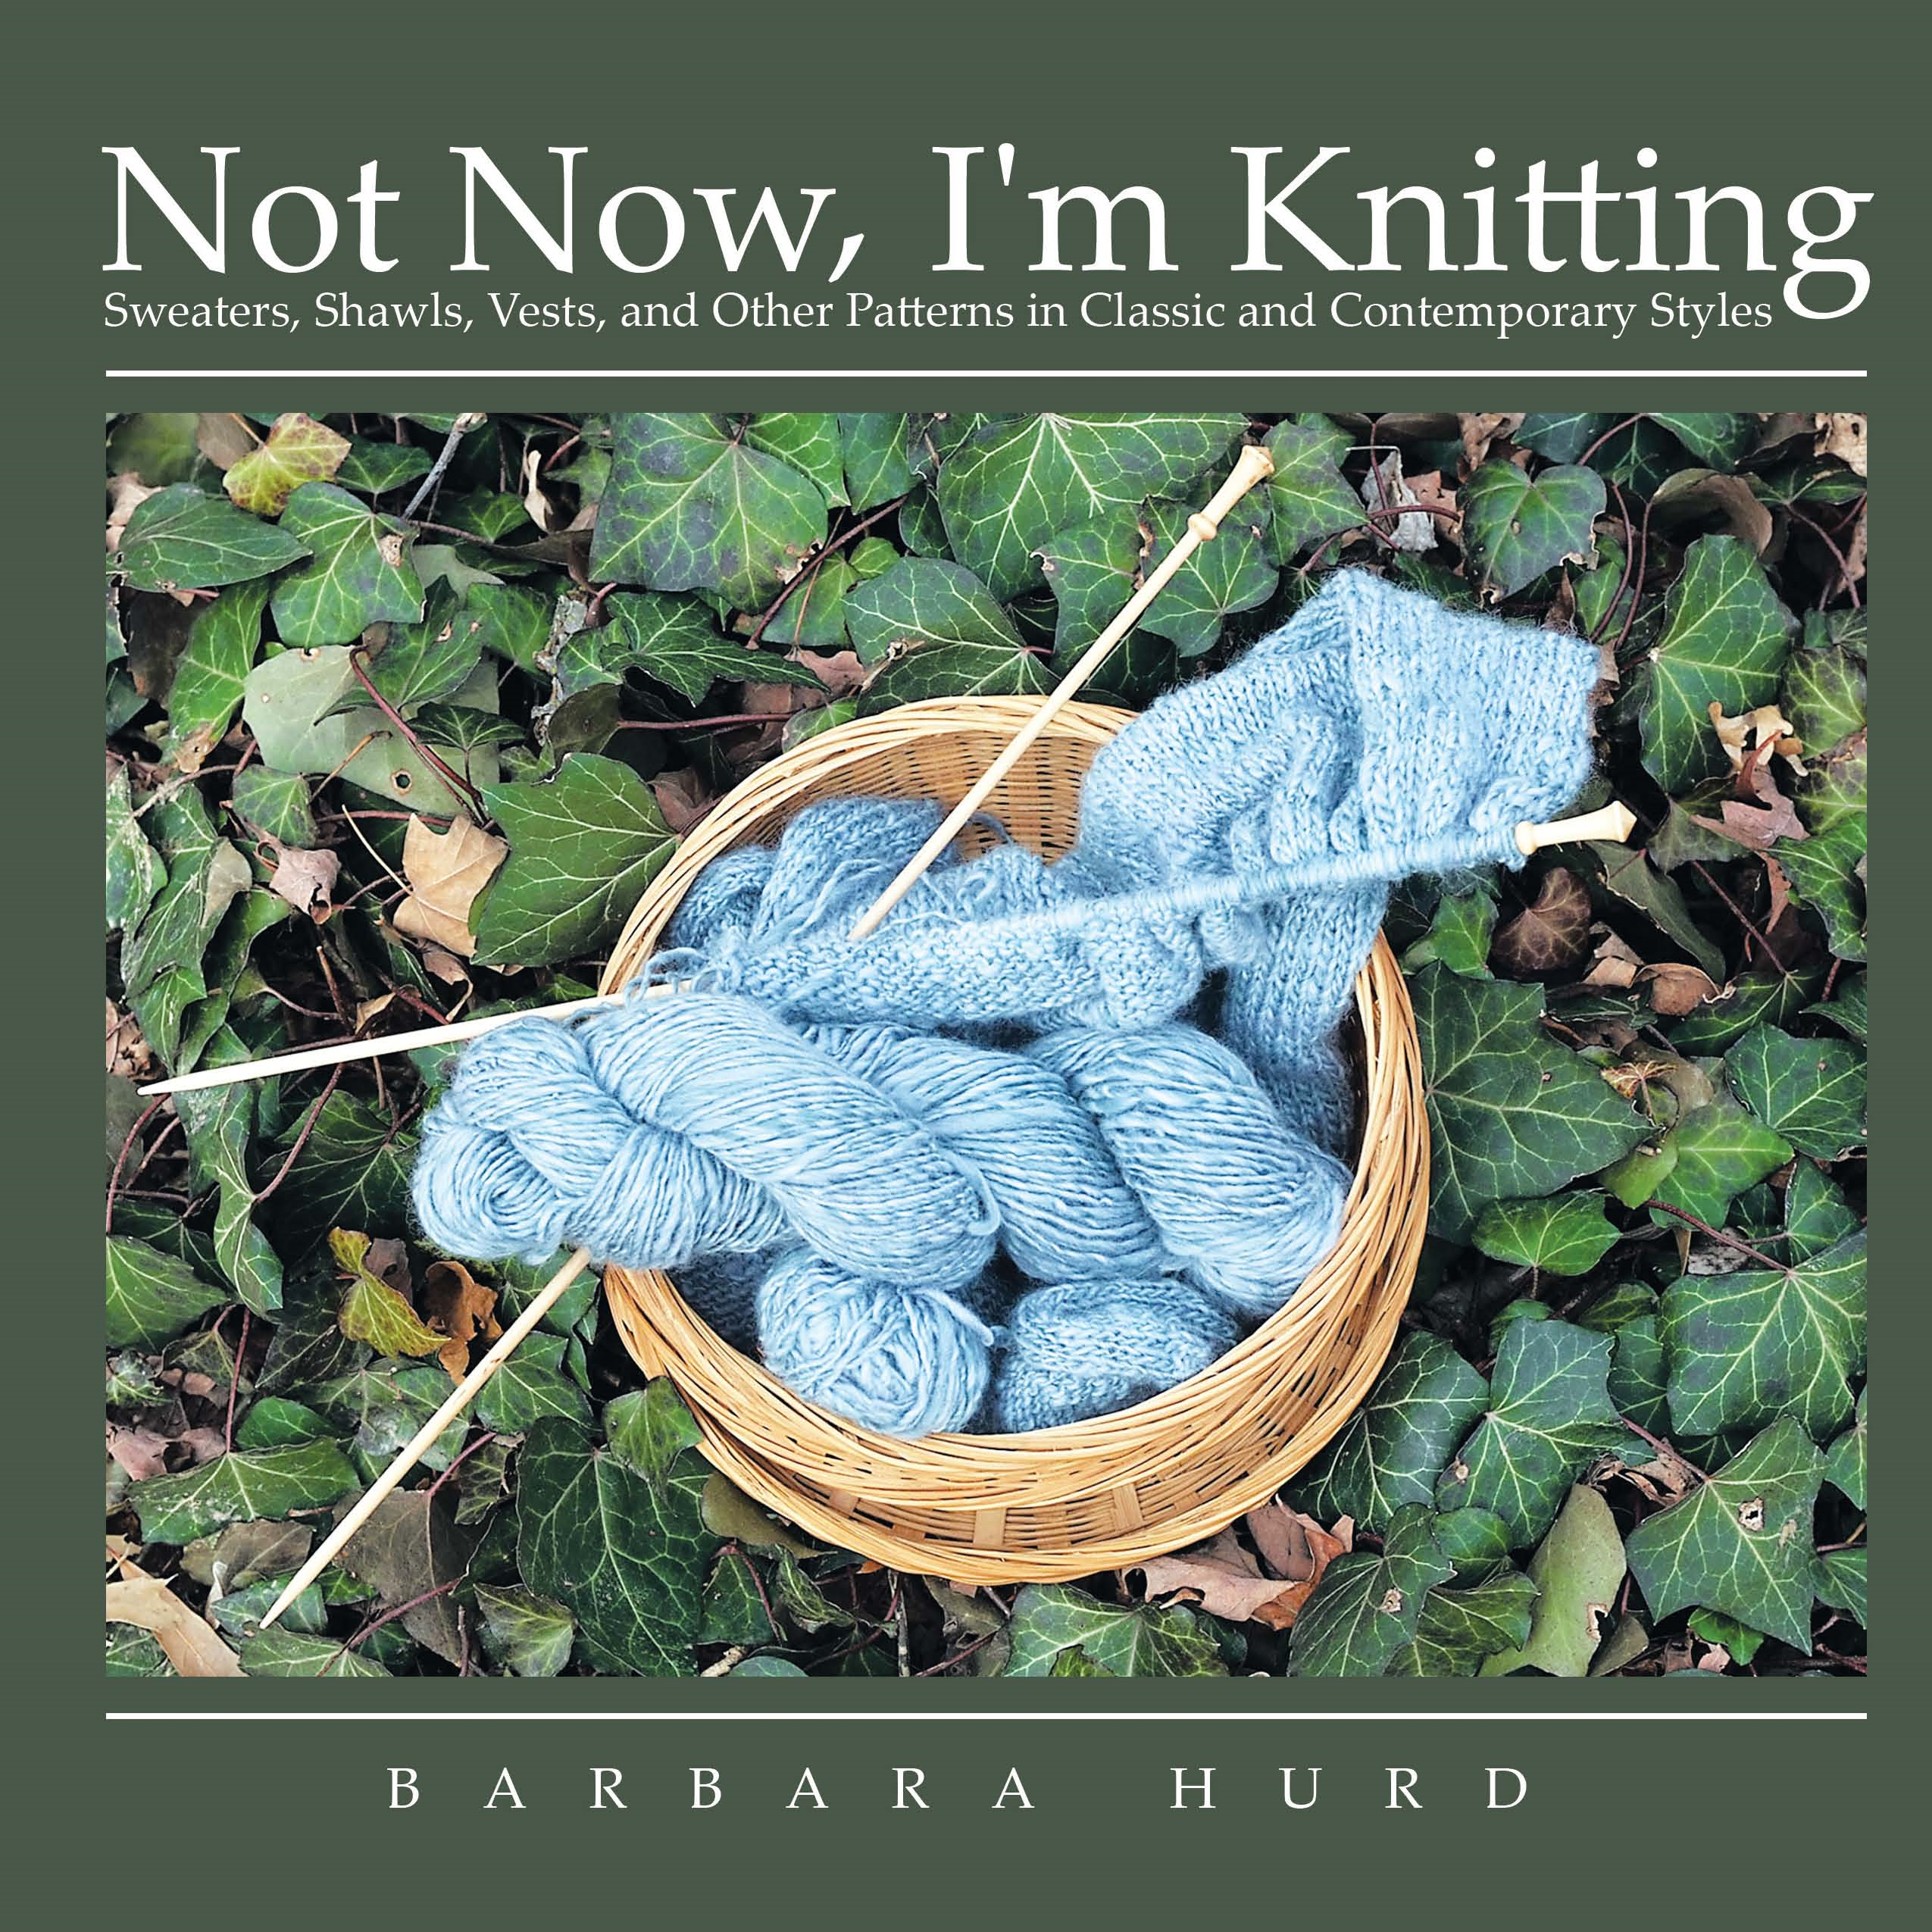 Not Now, I'm Knitting